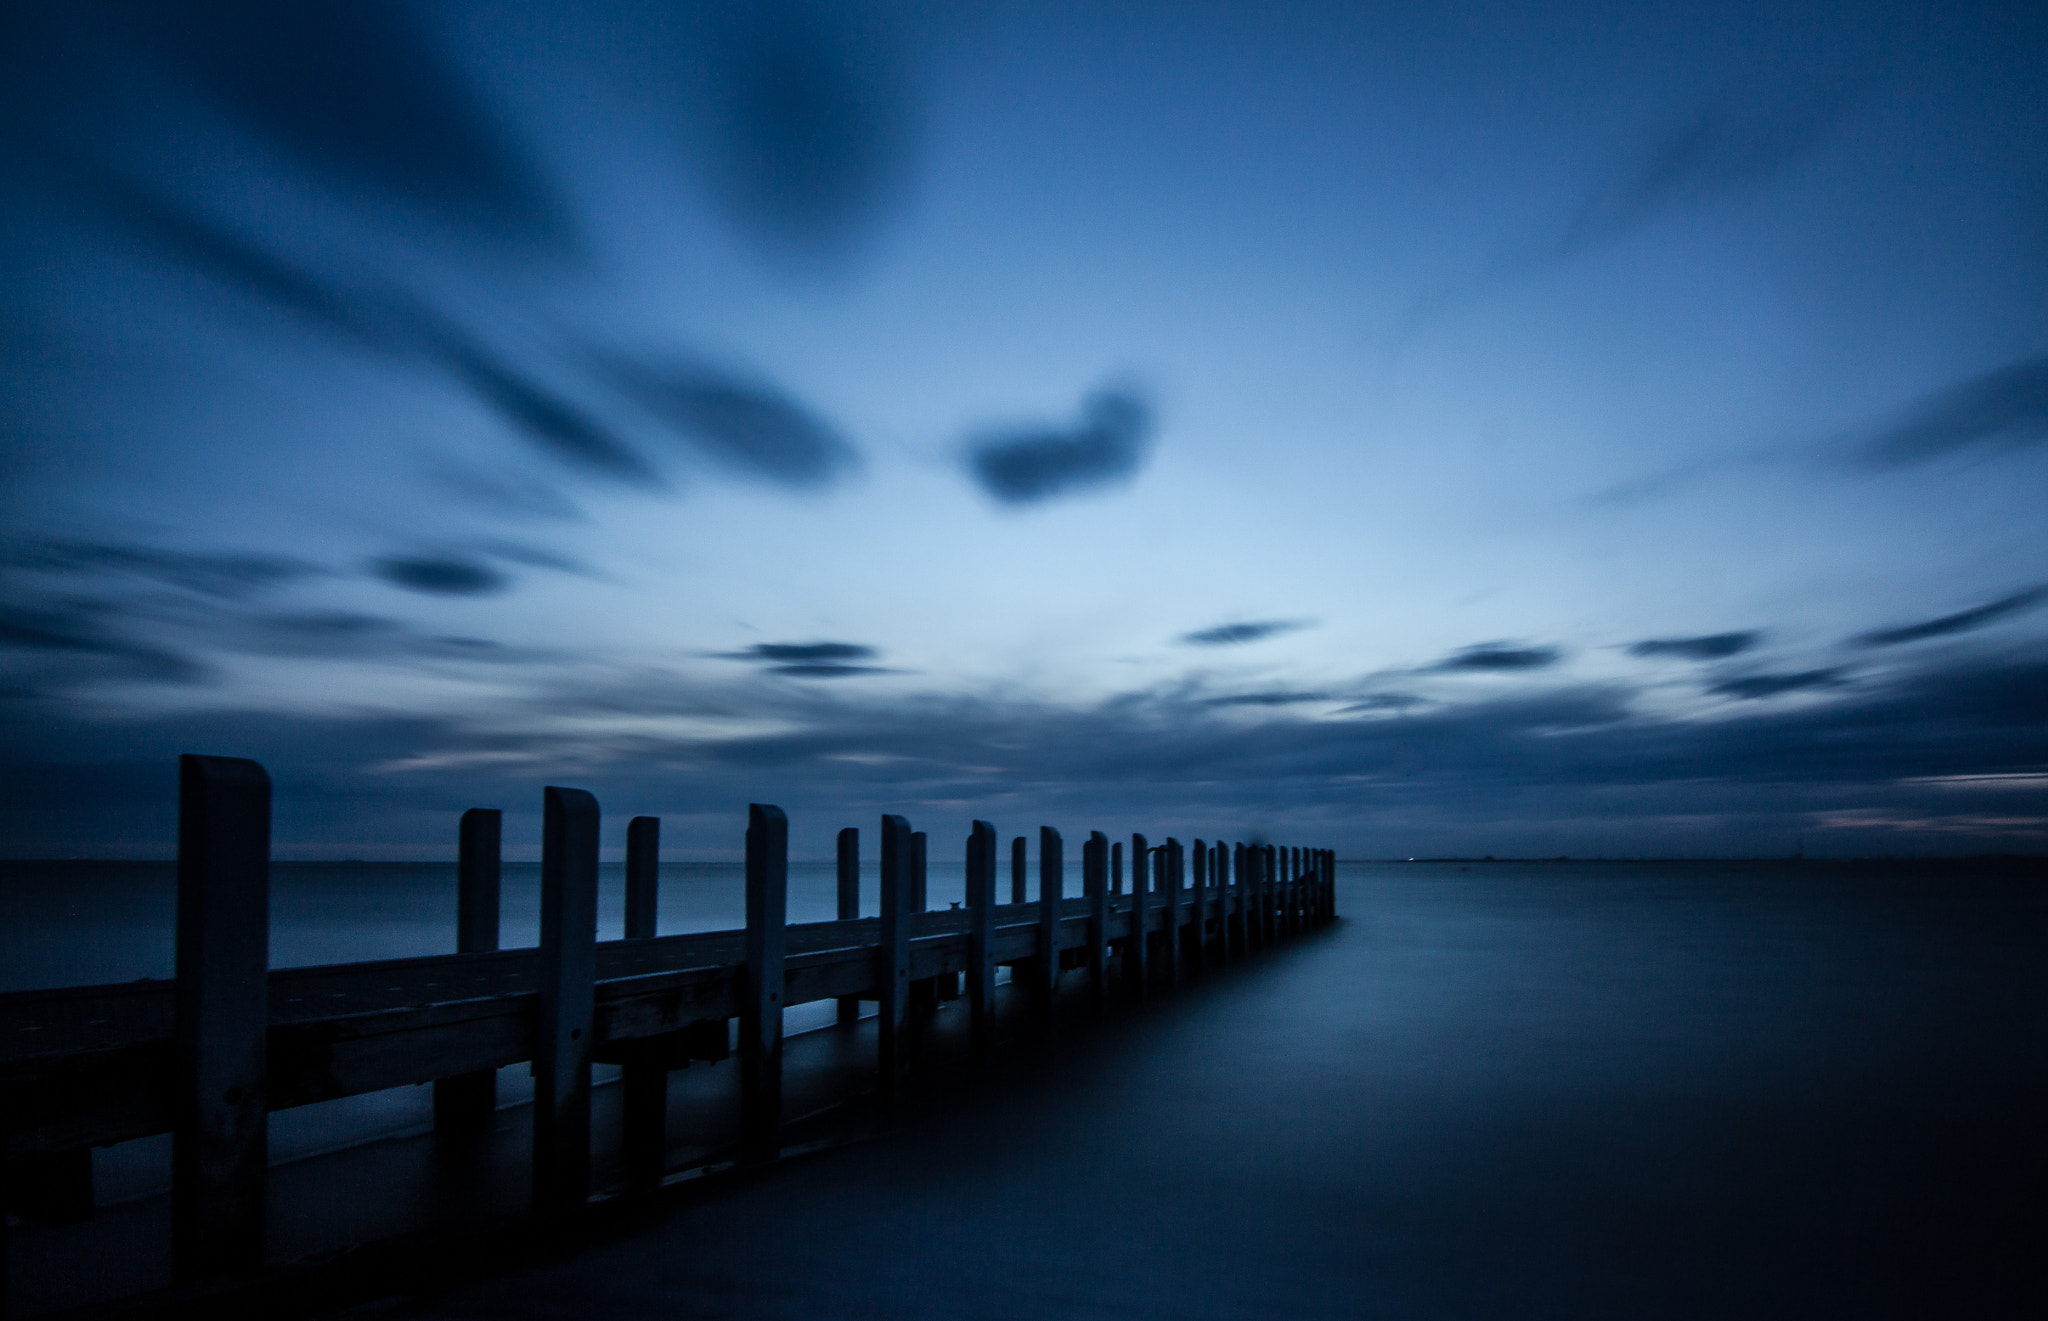 Photograph Blue Hour at the Pier by Gavin Queit on 500px